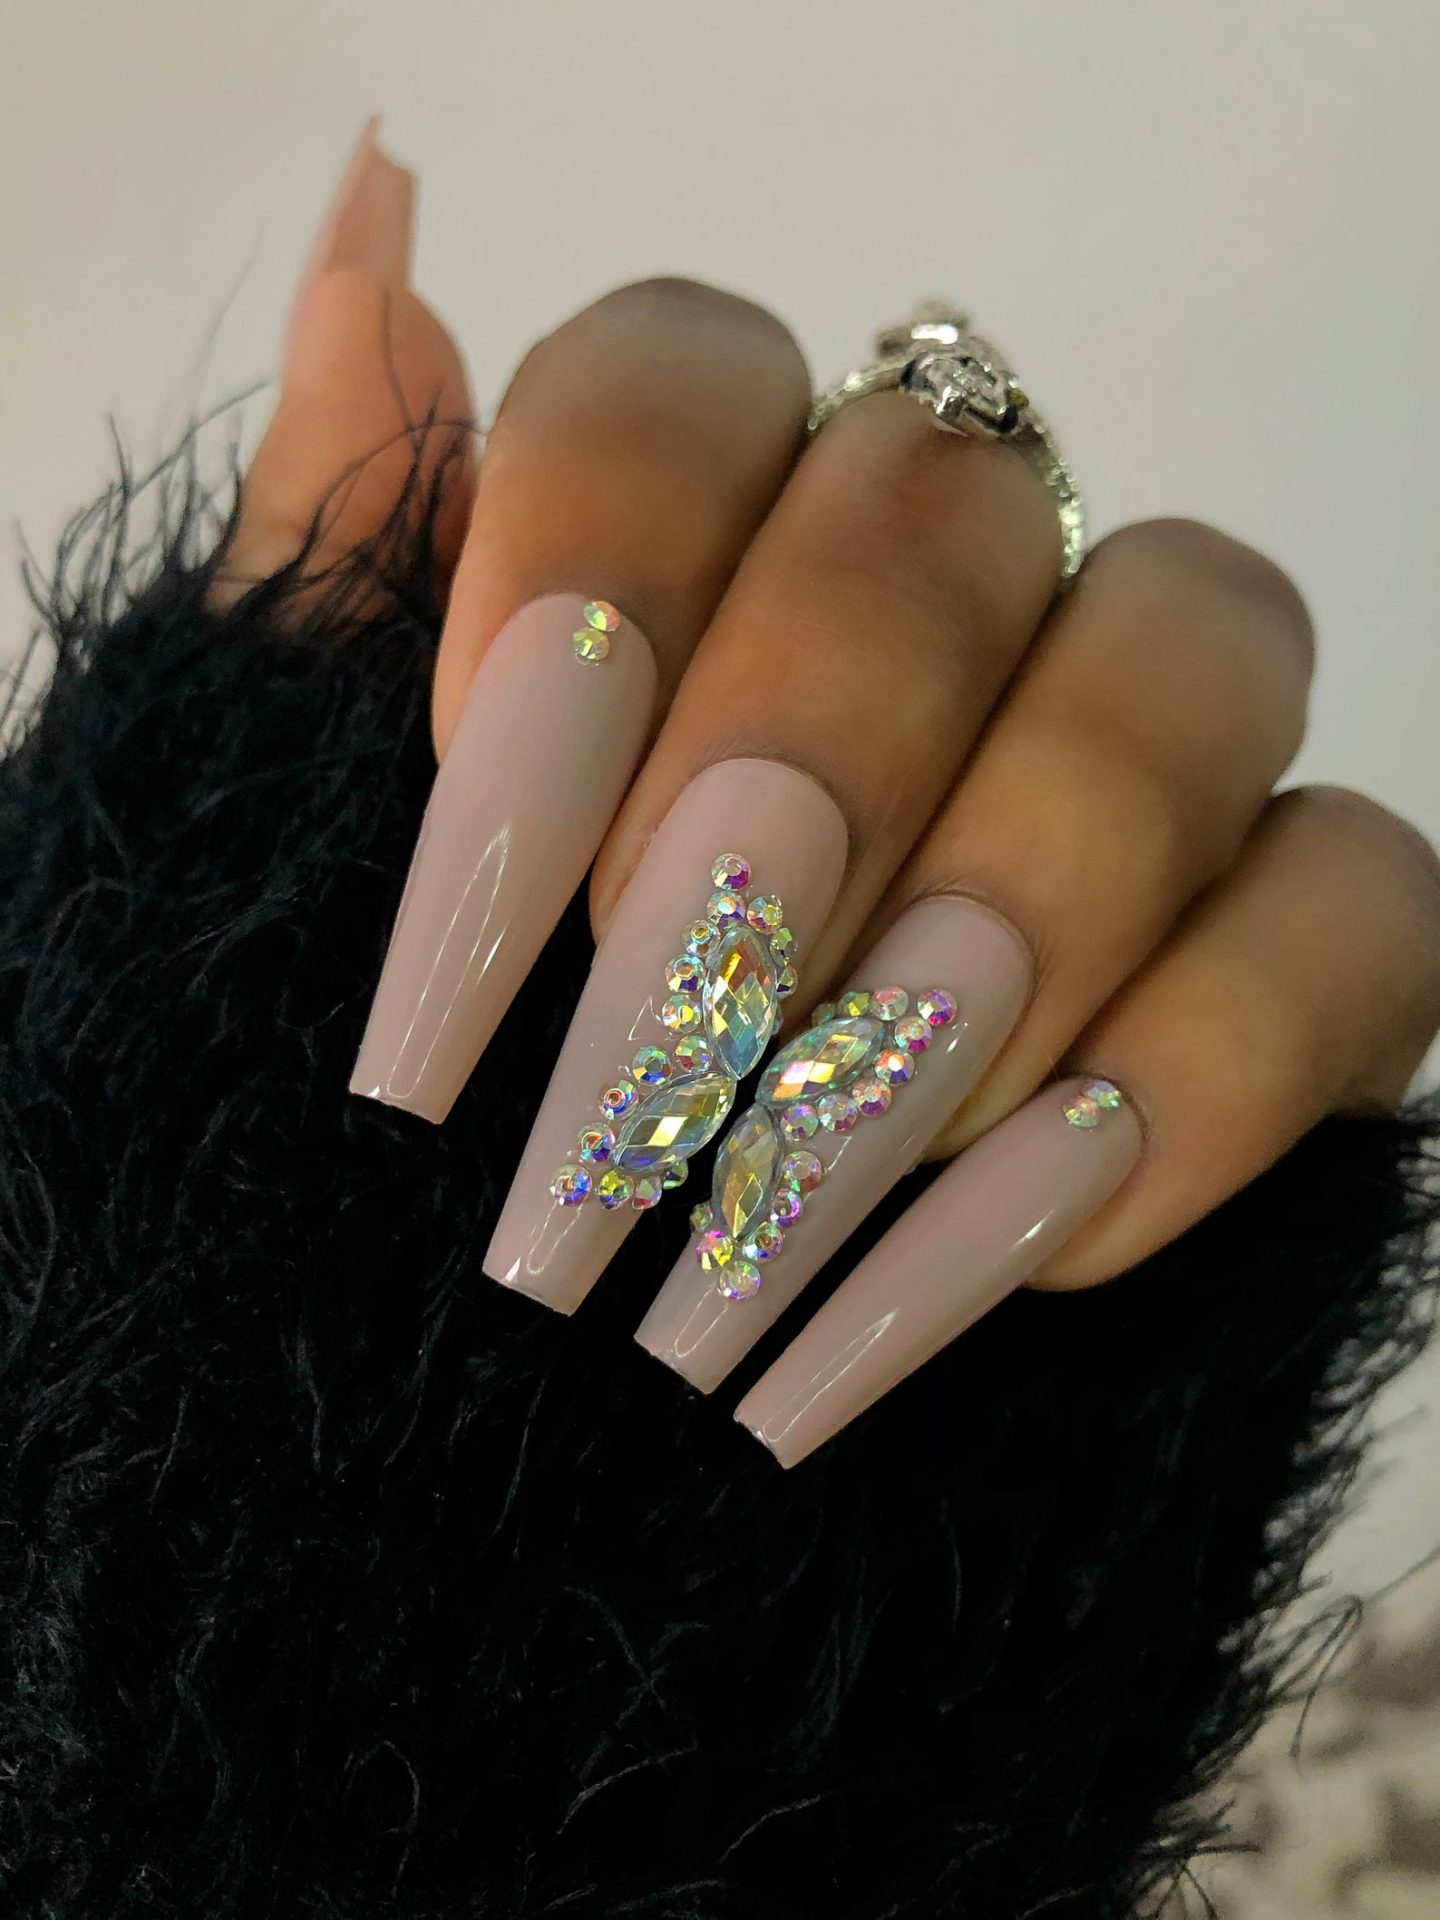 Taupe acrylic coffin nails with butterfly nail art effect and rhinestones